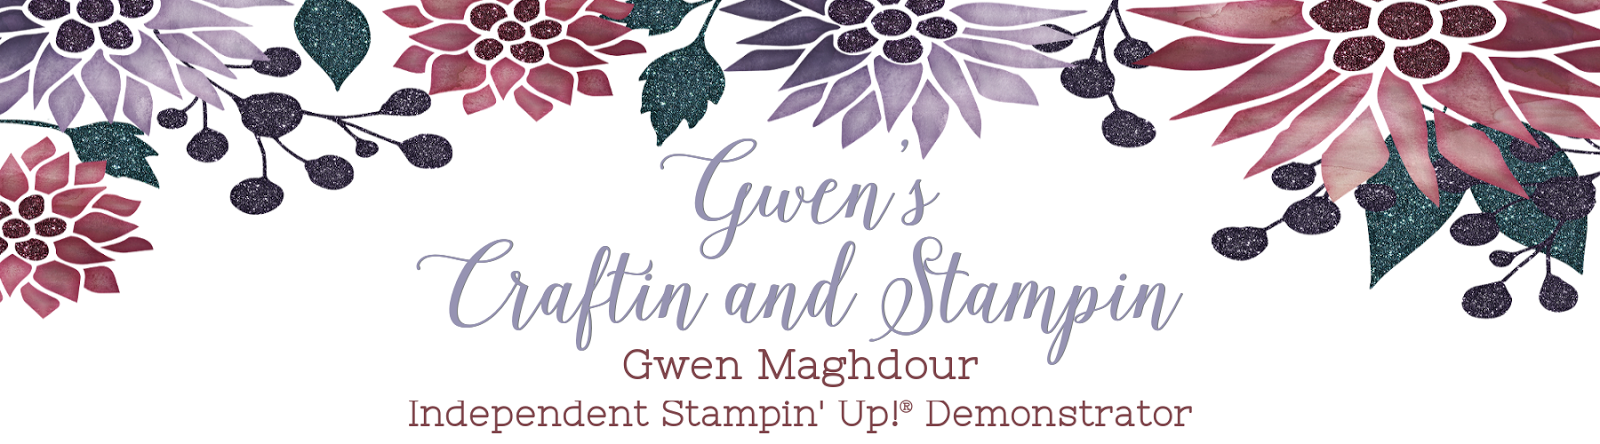 Gwen's Craftin and Stampin